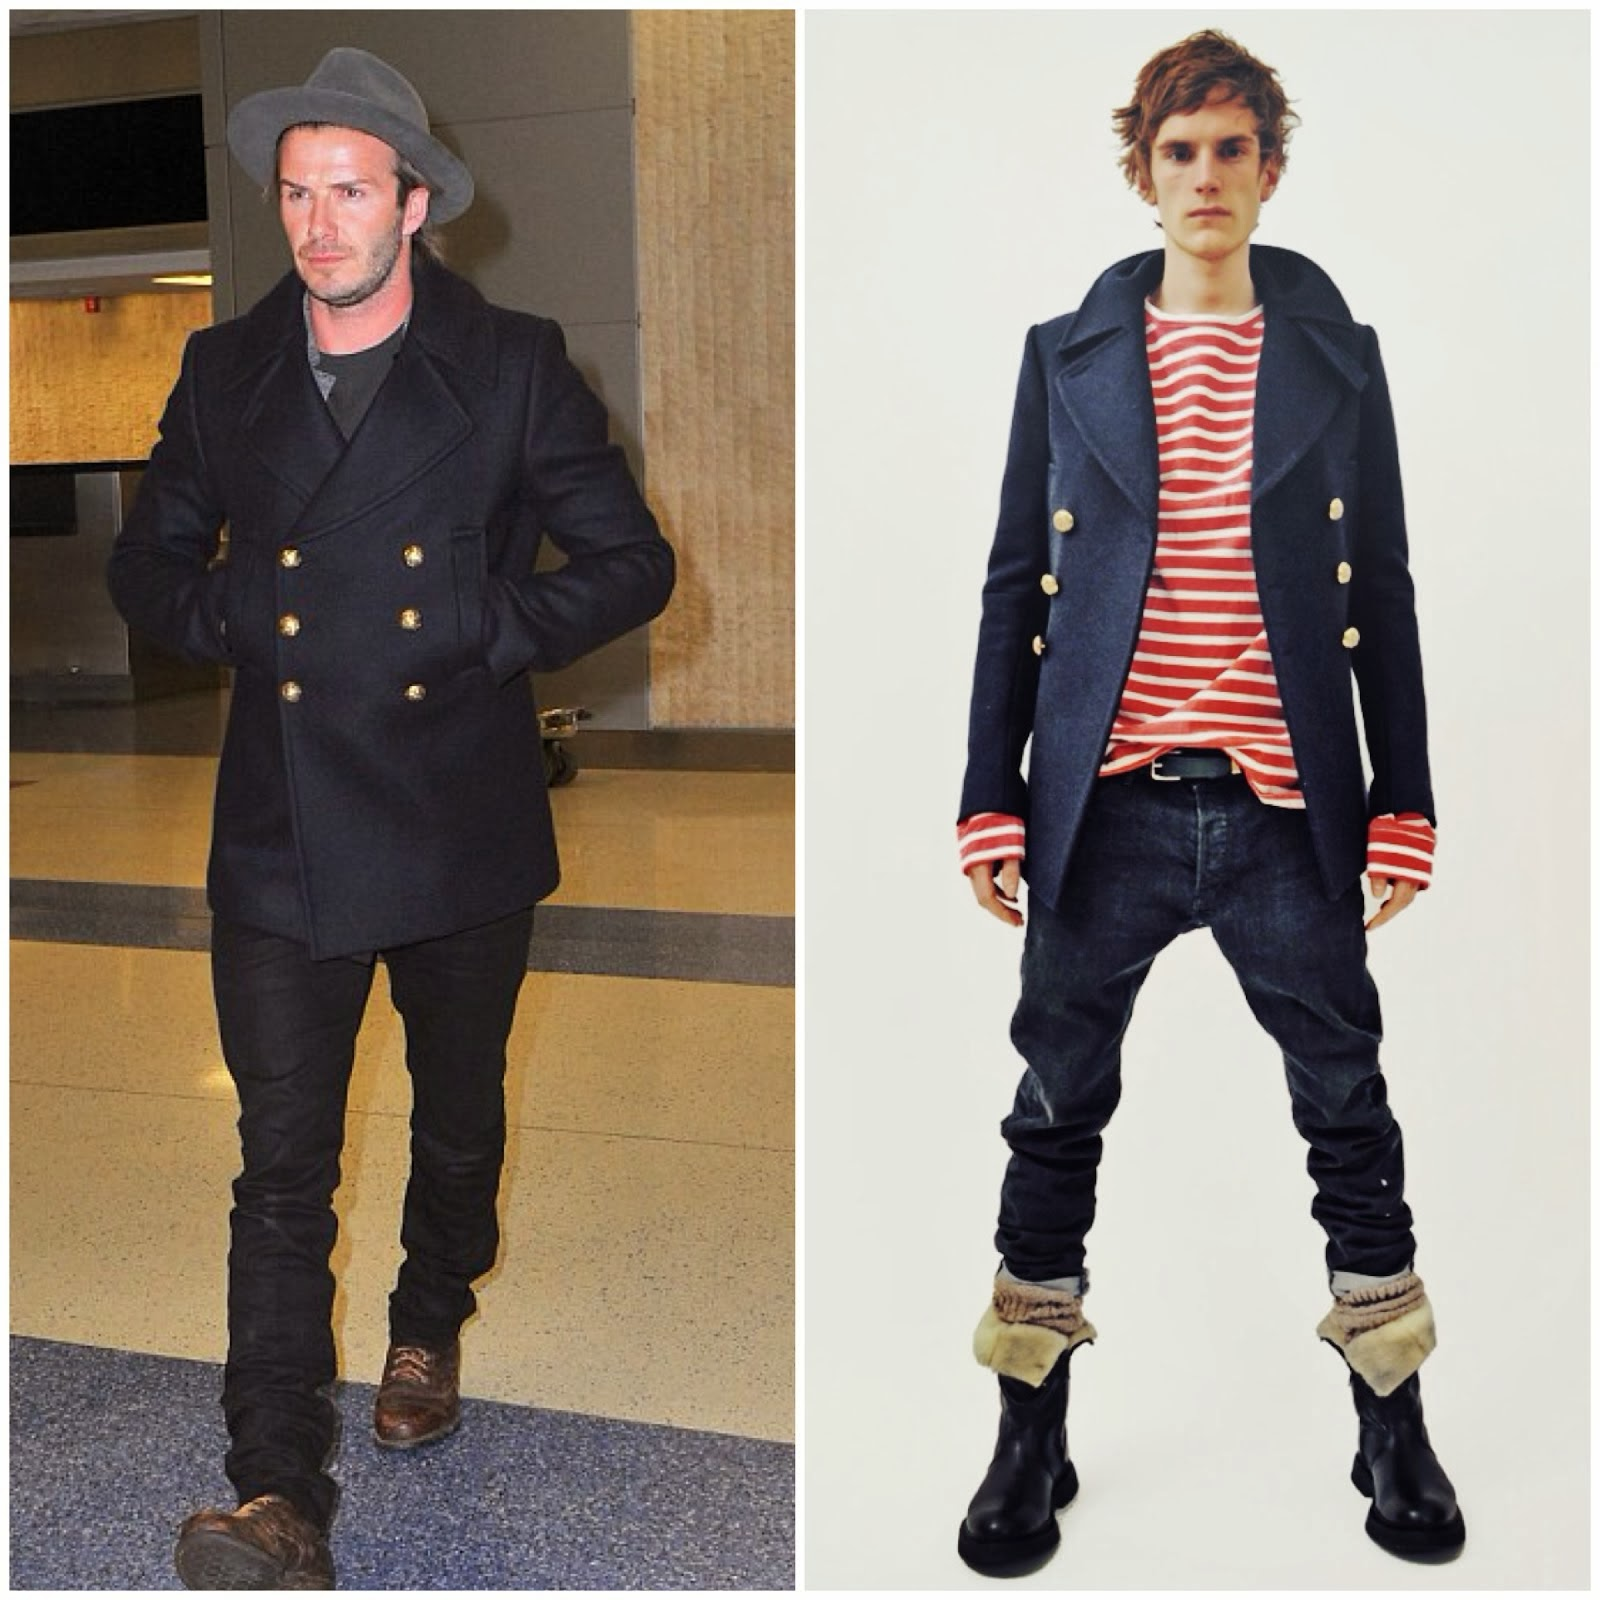 00O00 Menswear Blog: David Beckham in Balmain gold button pea coat - JFK Airport, New York